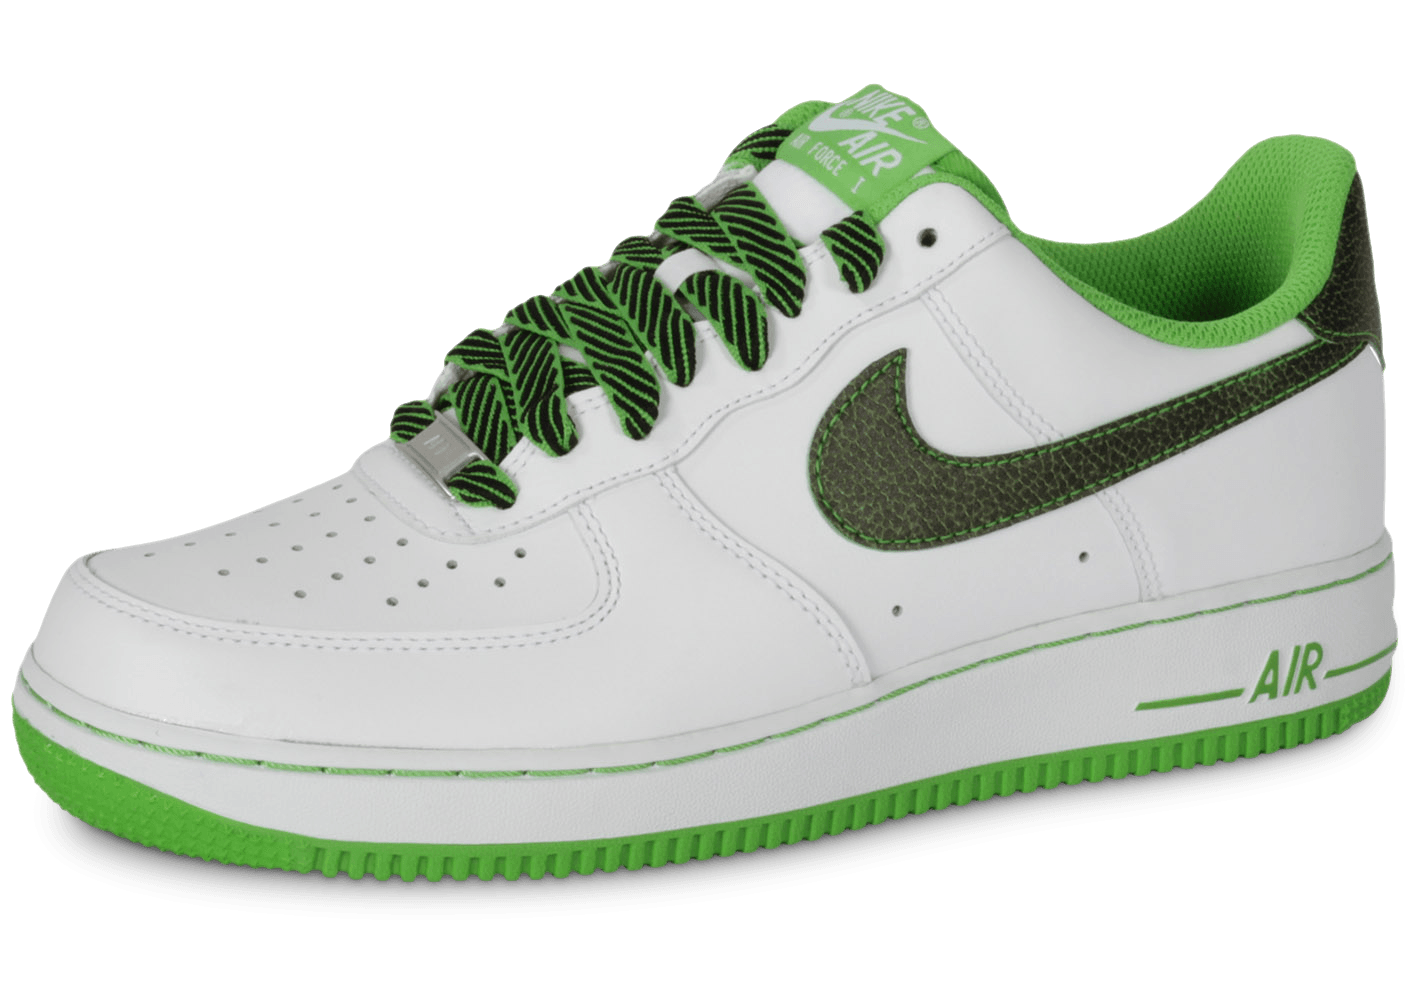 Low Force 1 Blanche Nike Vert Air Pomme xoBCde